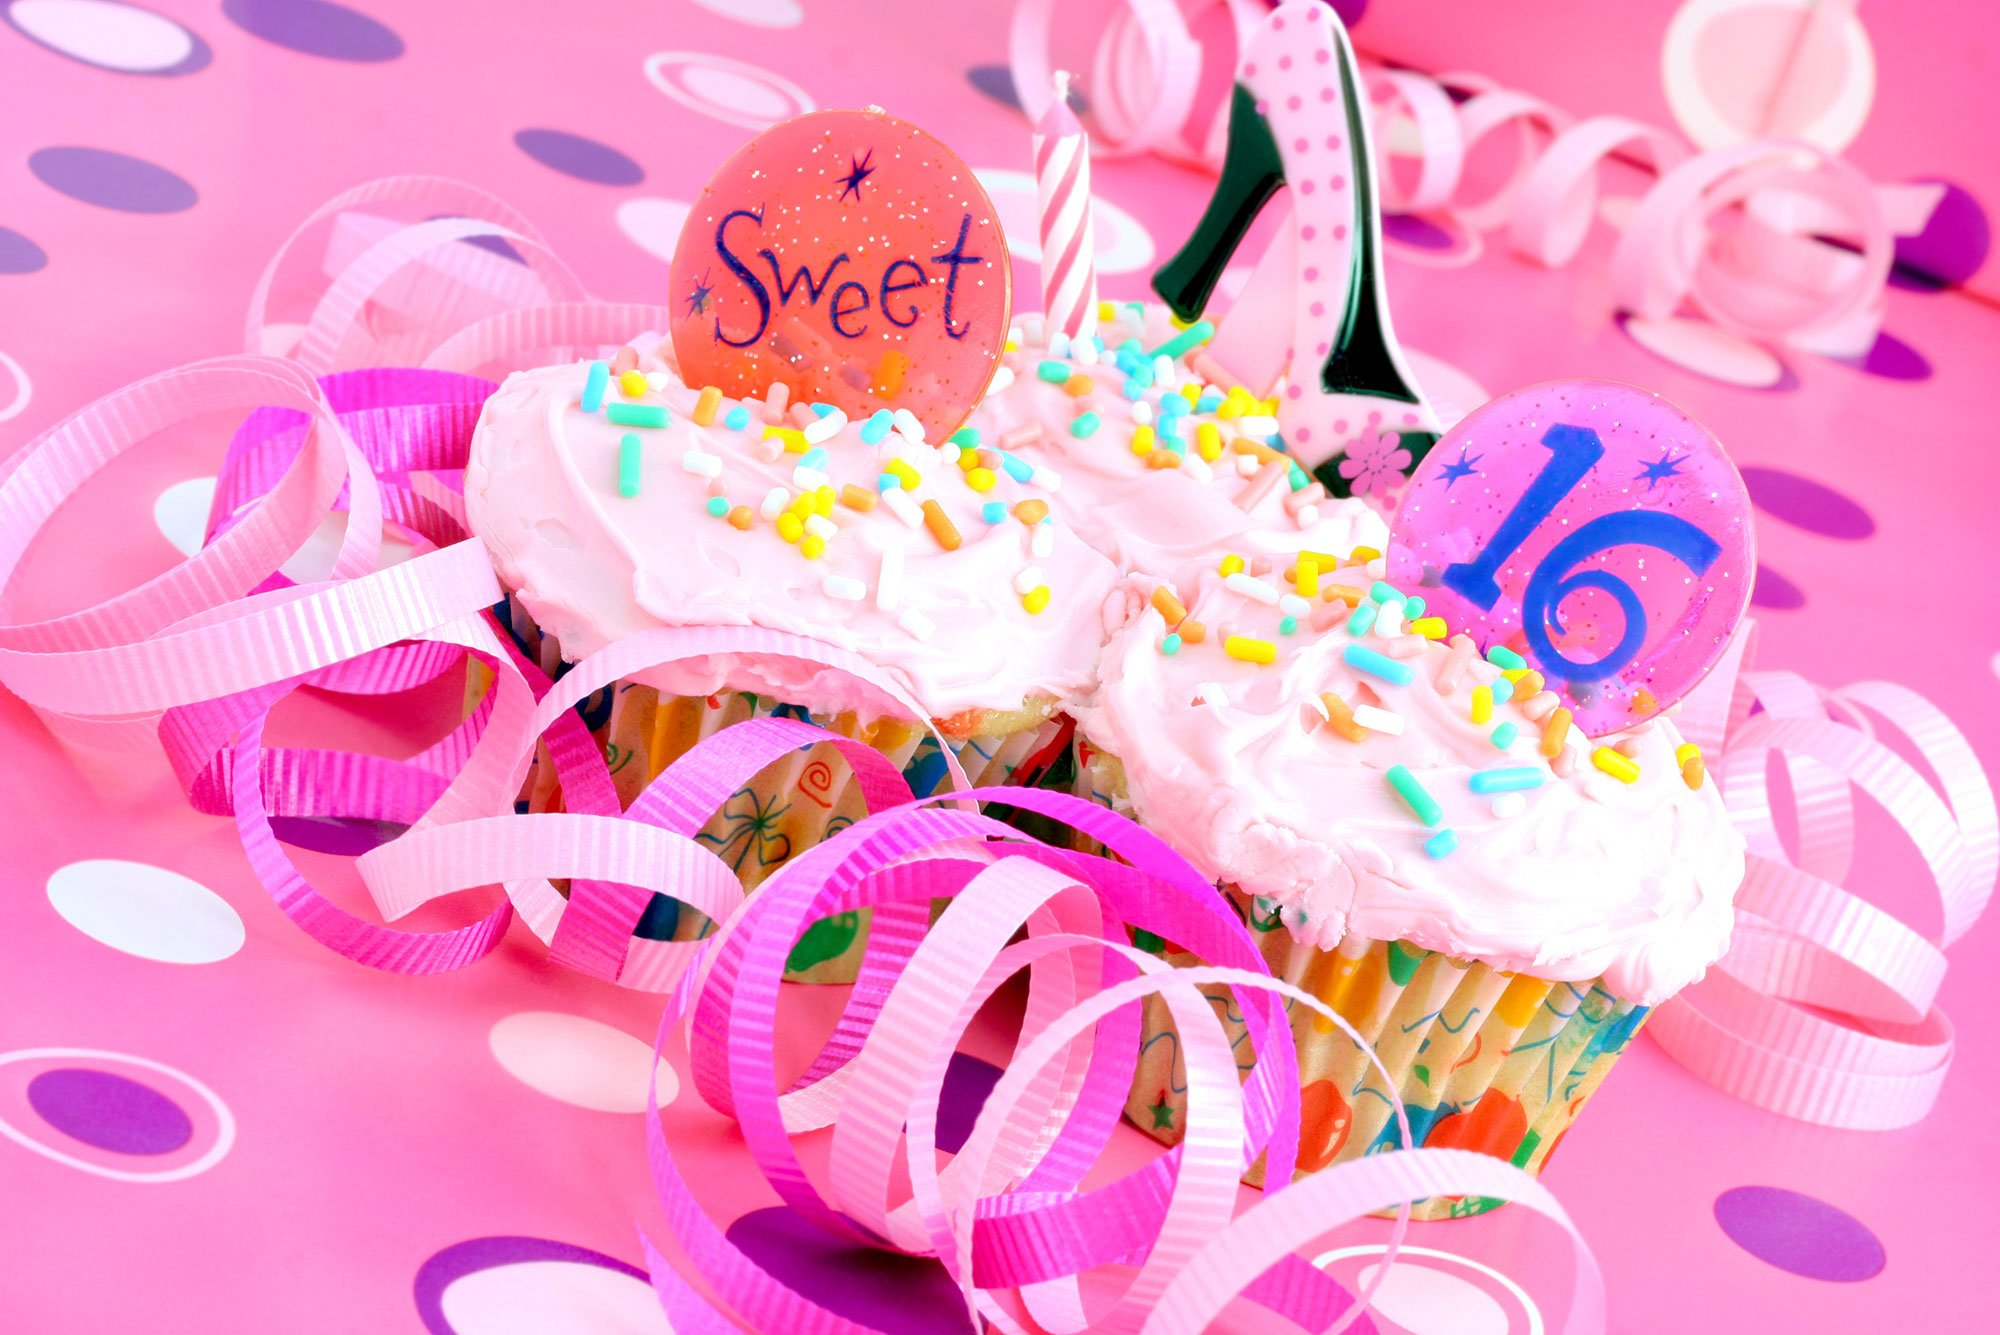 Sweet 16 party cupcakes